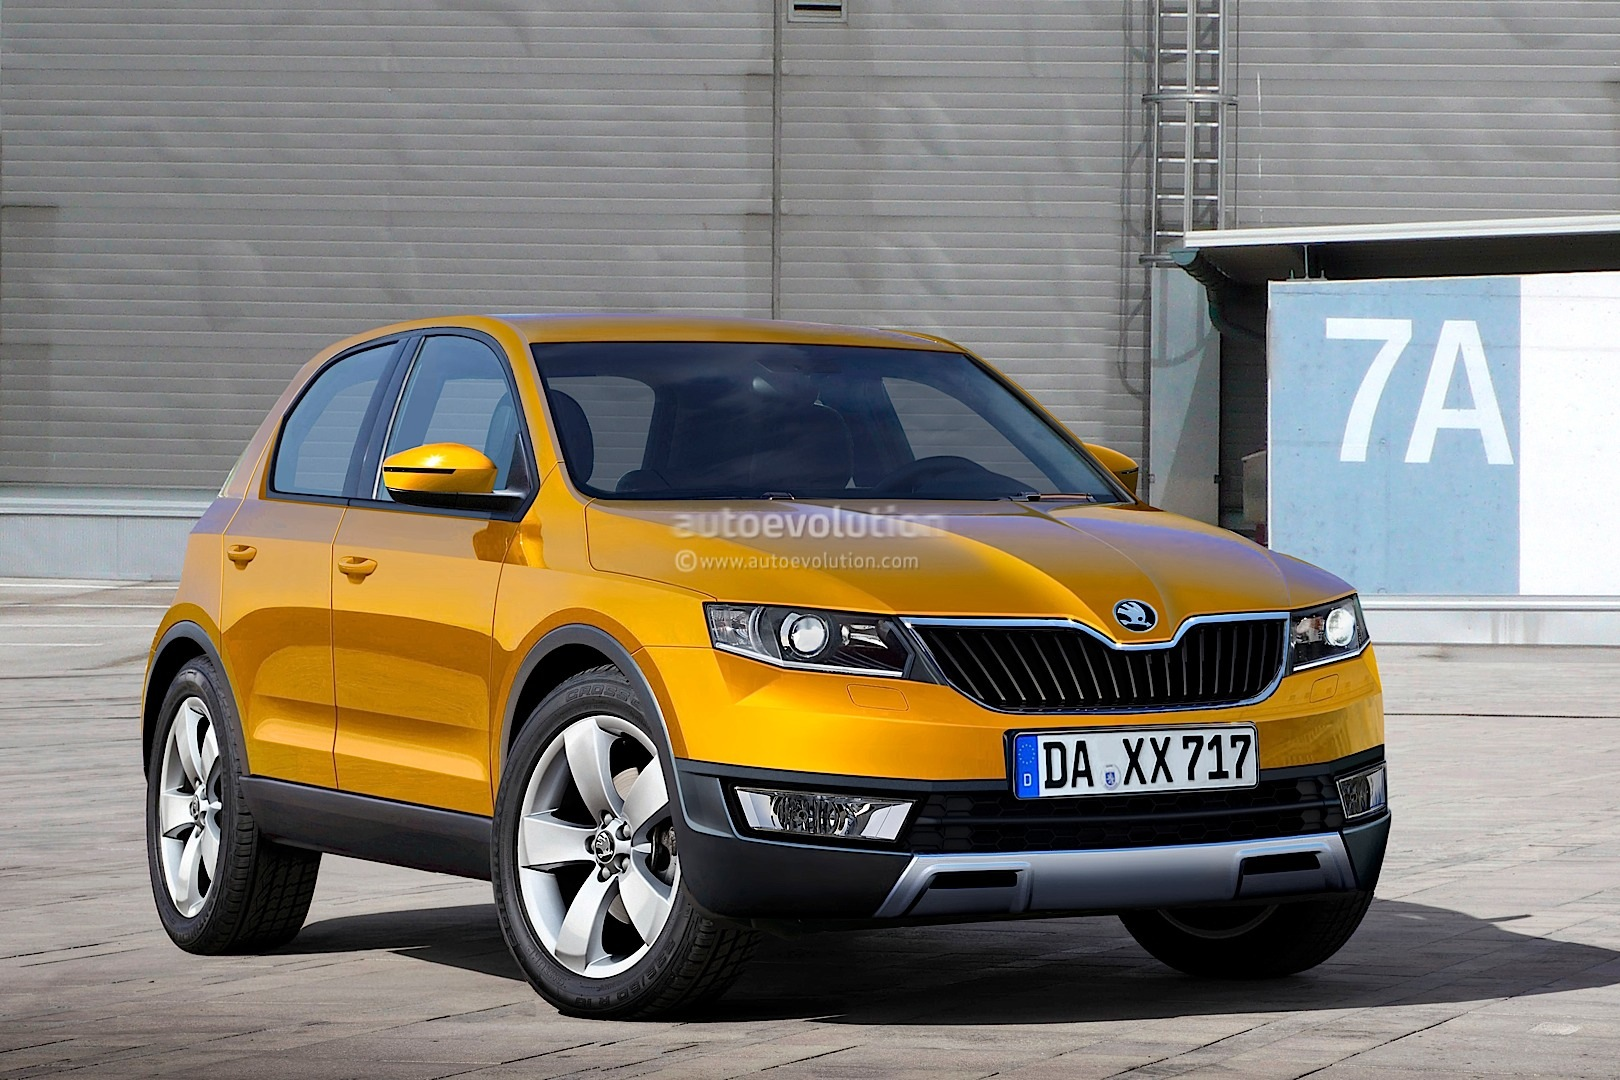 2015 Skoda Polar Rendered - autoevolution